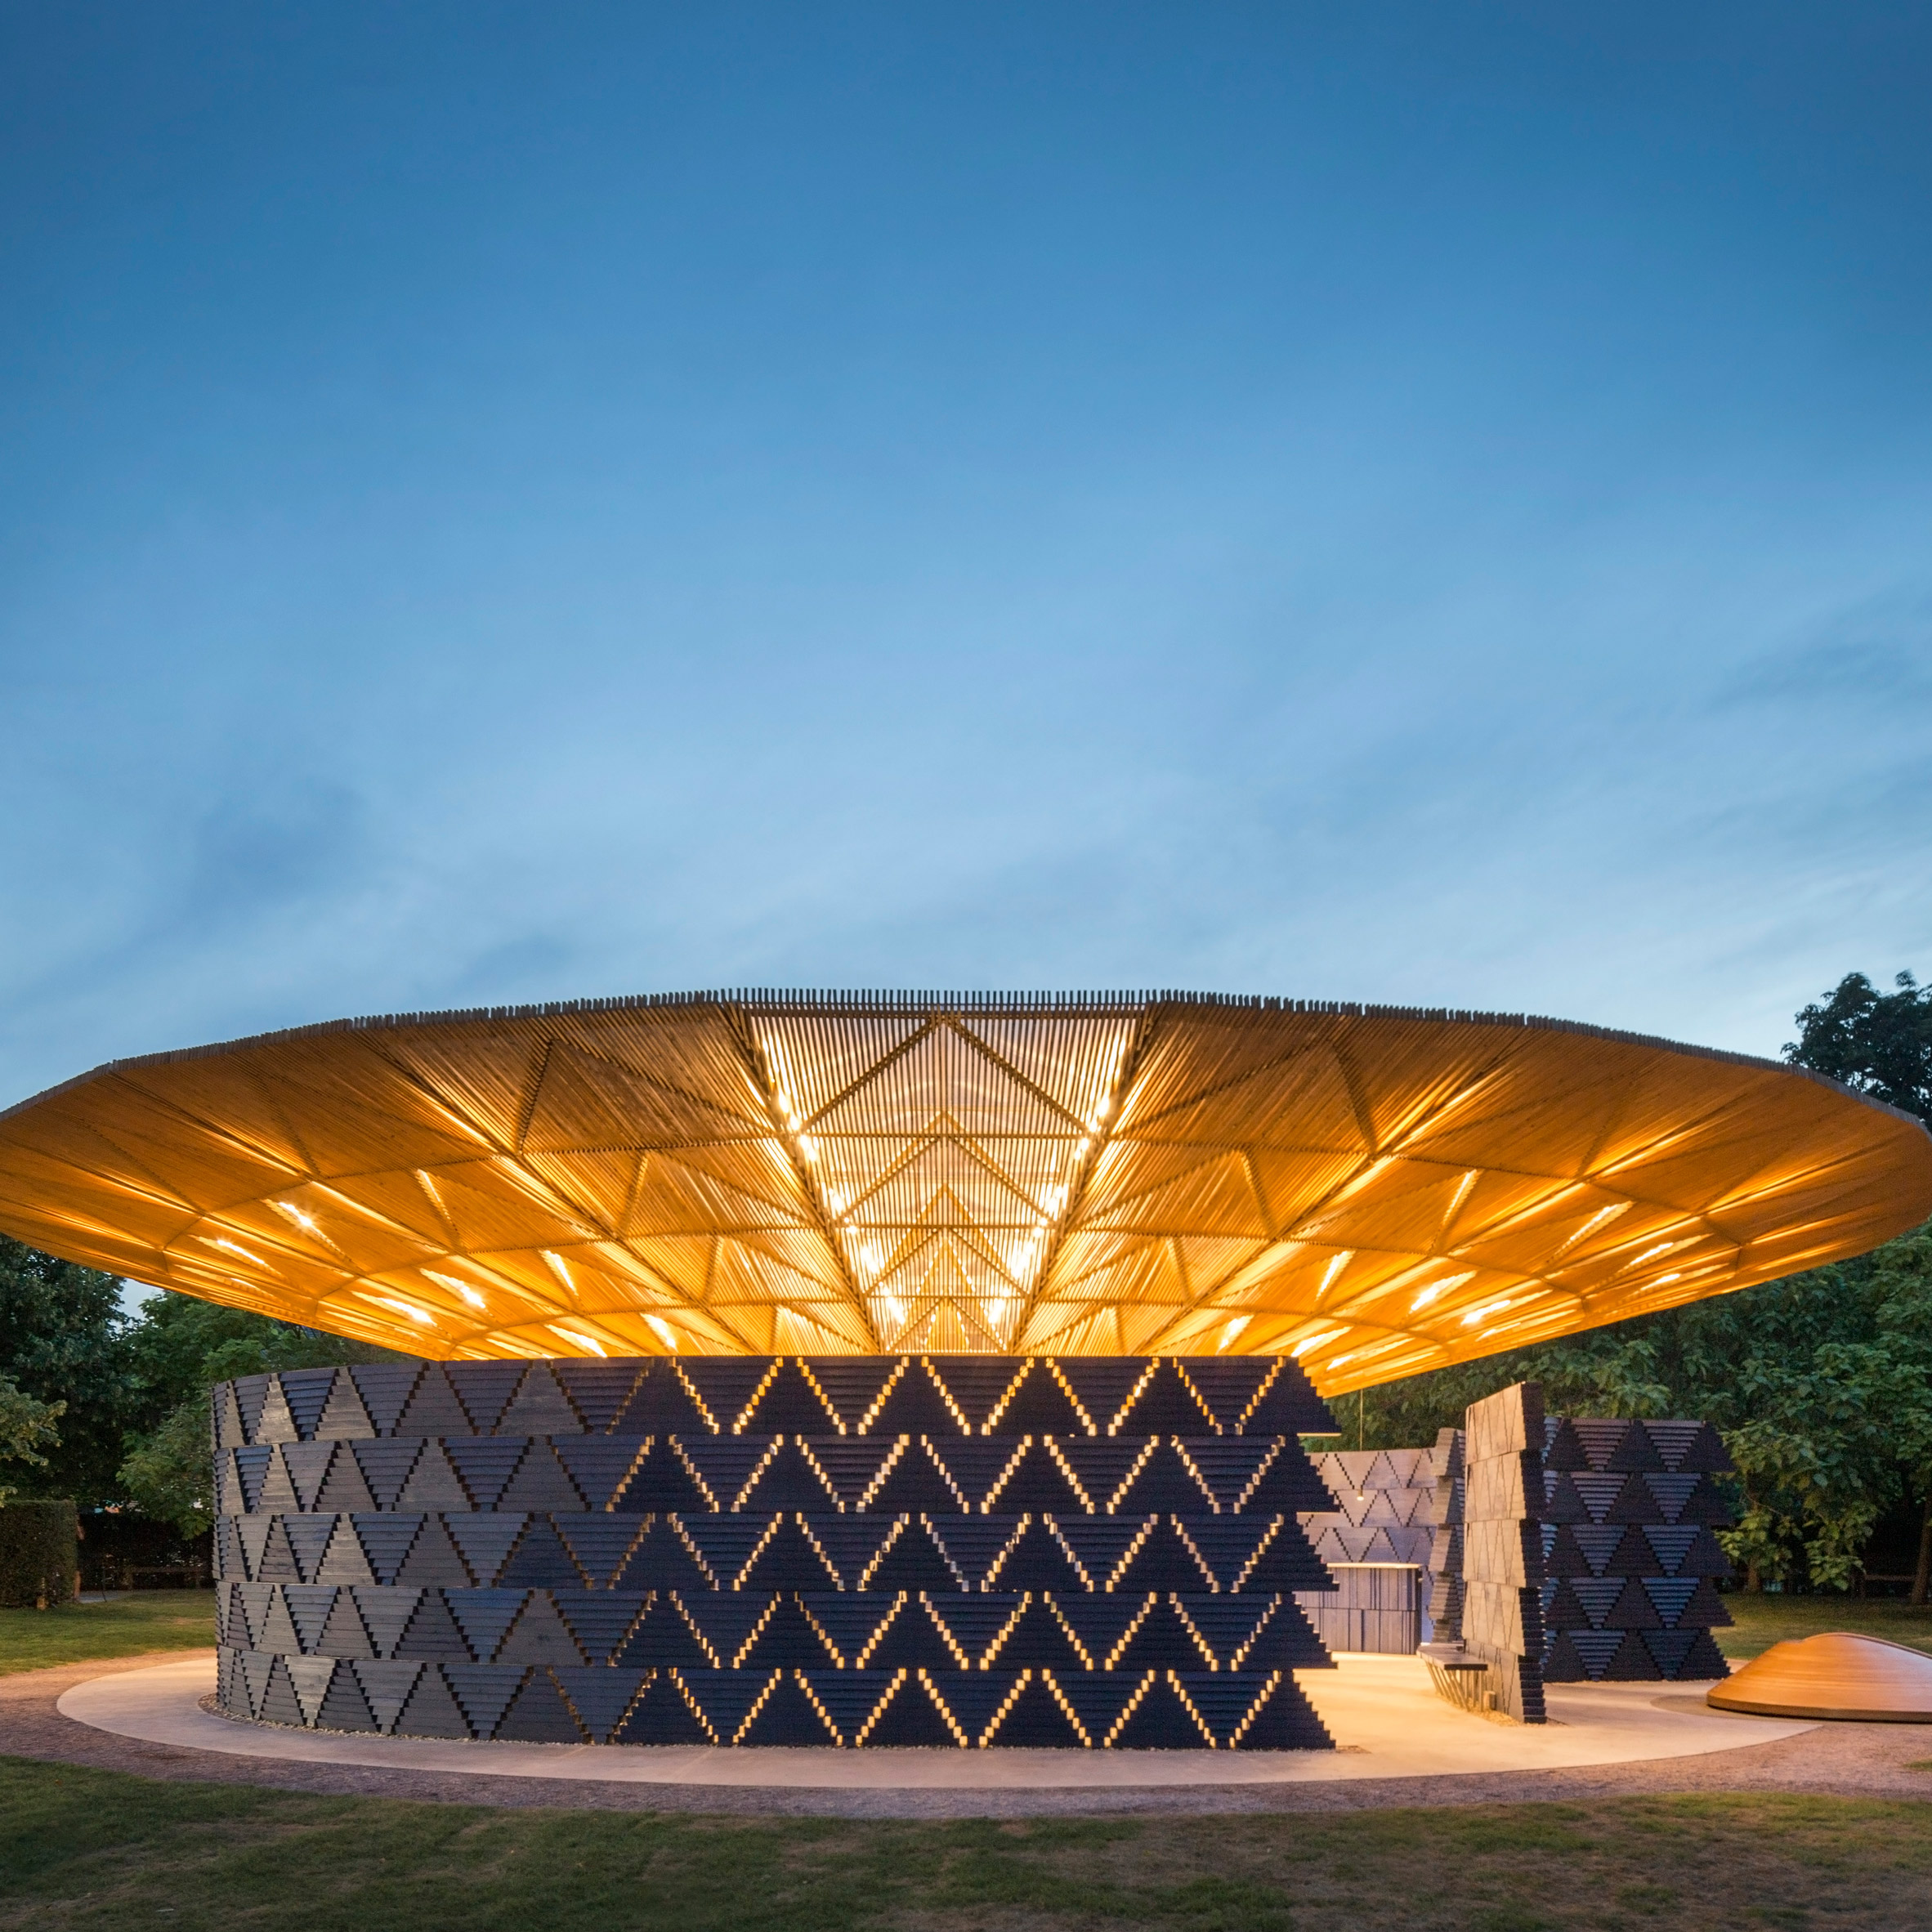 This week, RIBA named national winners and the Serpentine Pavilion was unveiled